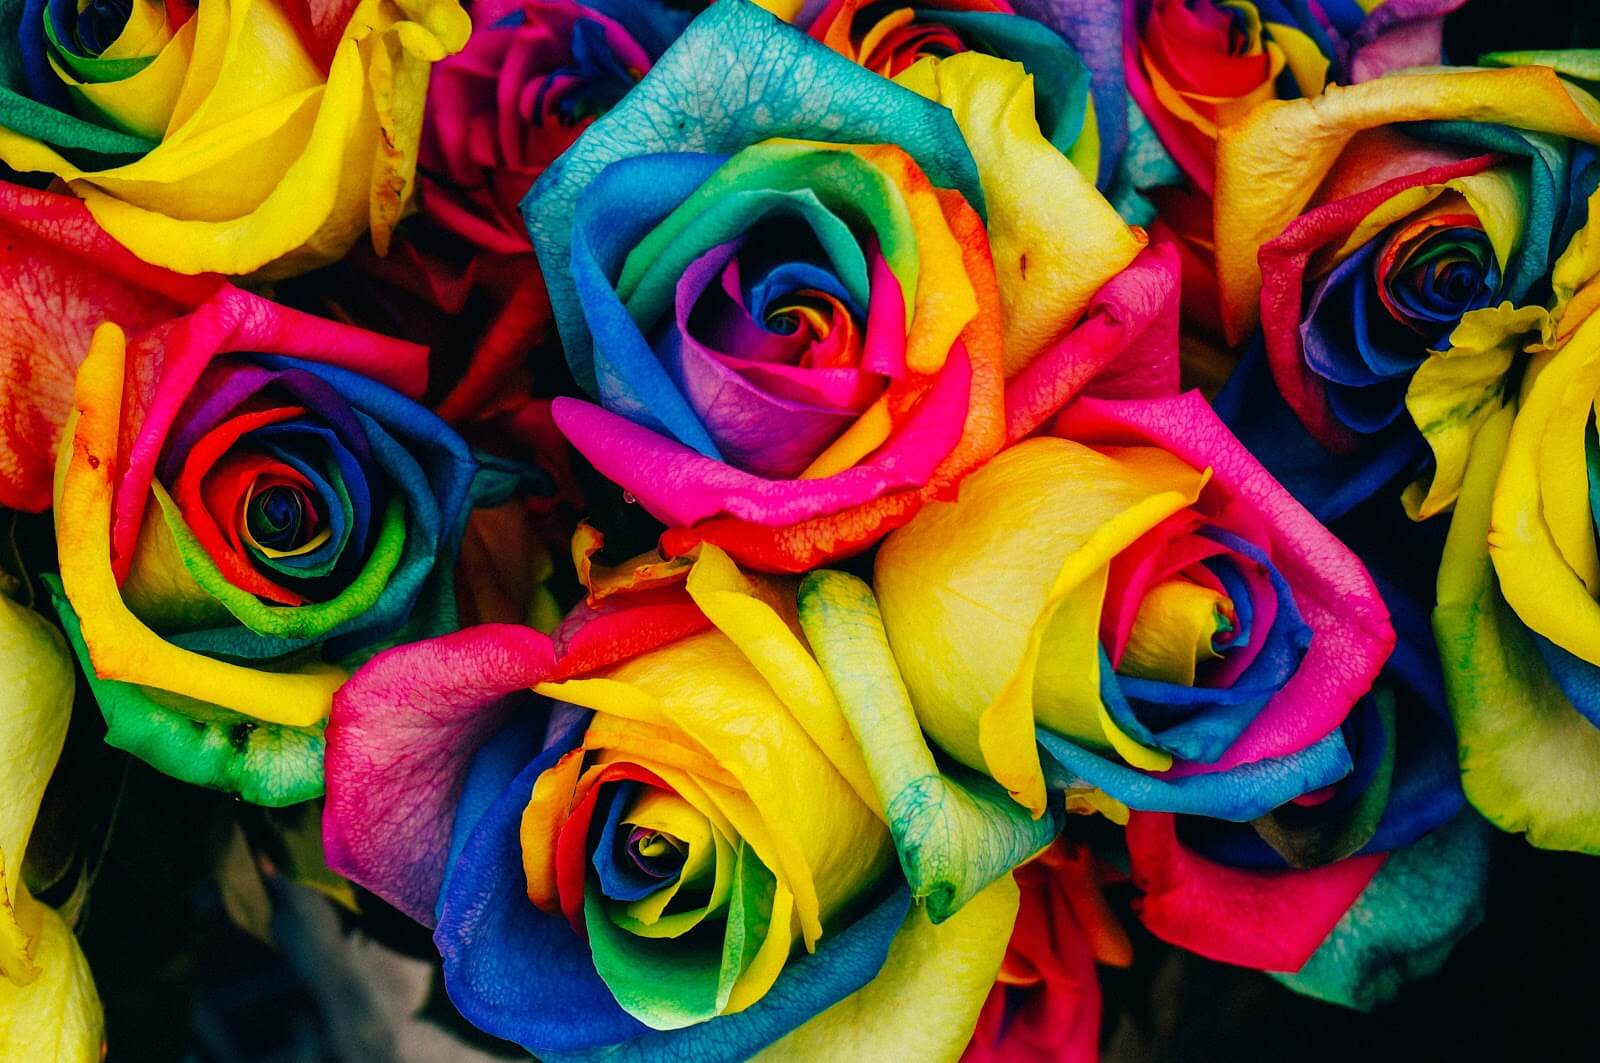 image of colorful roses